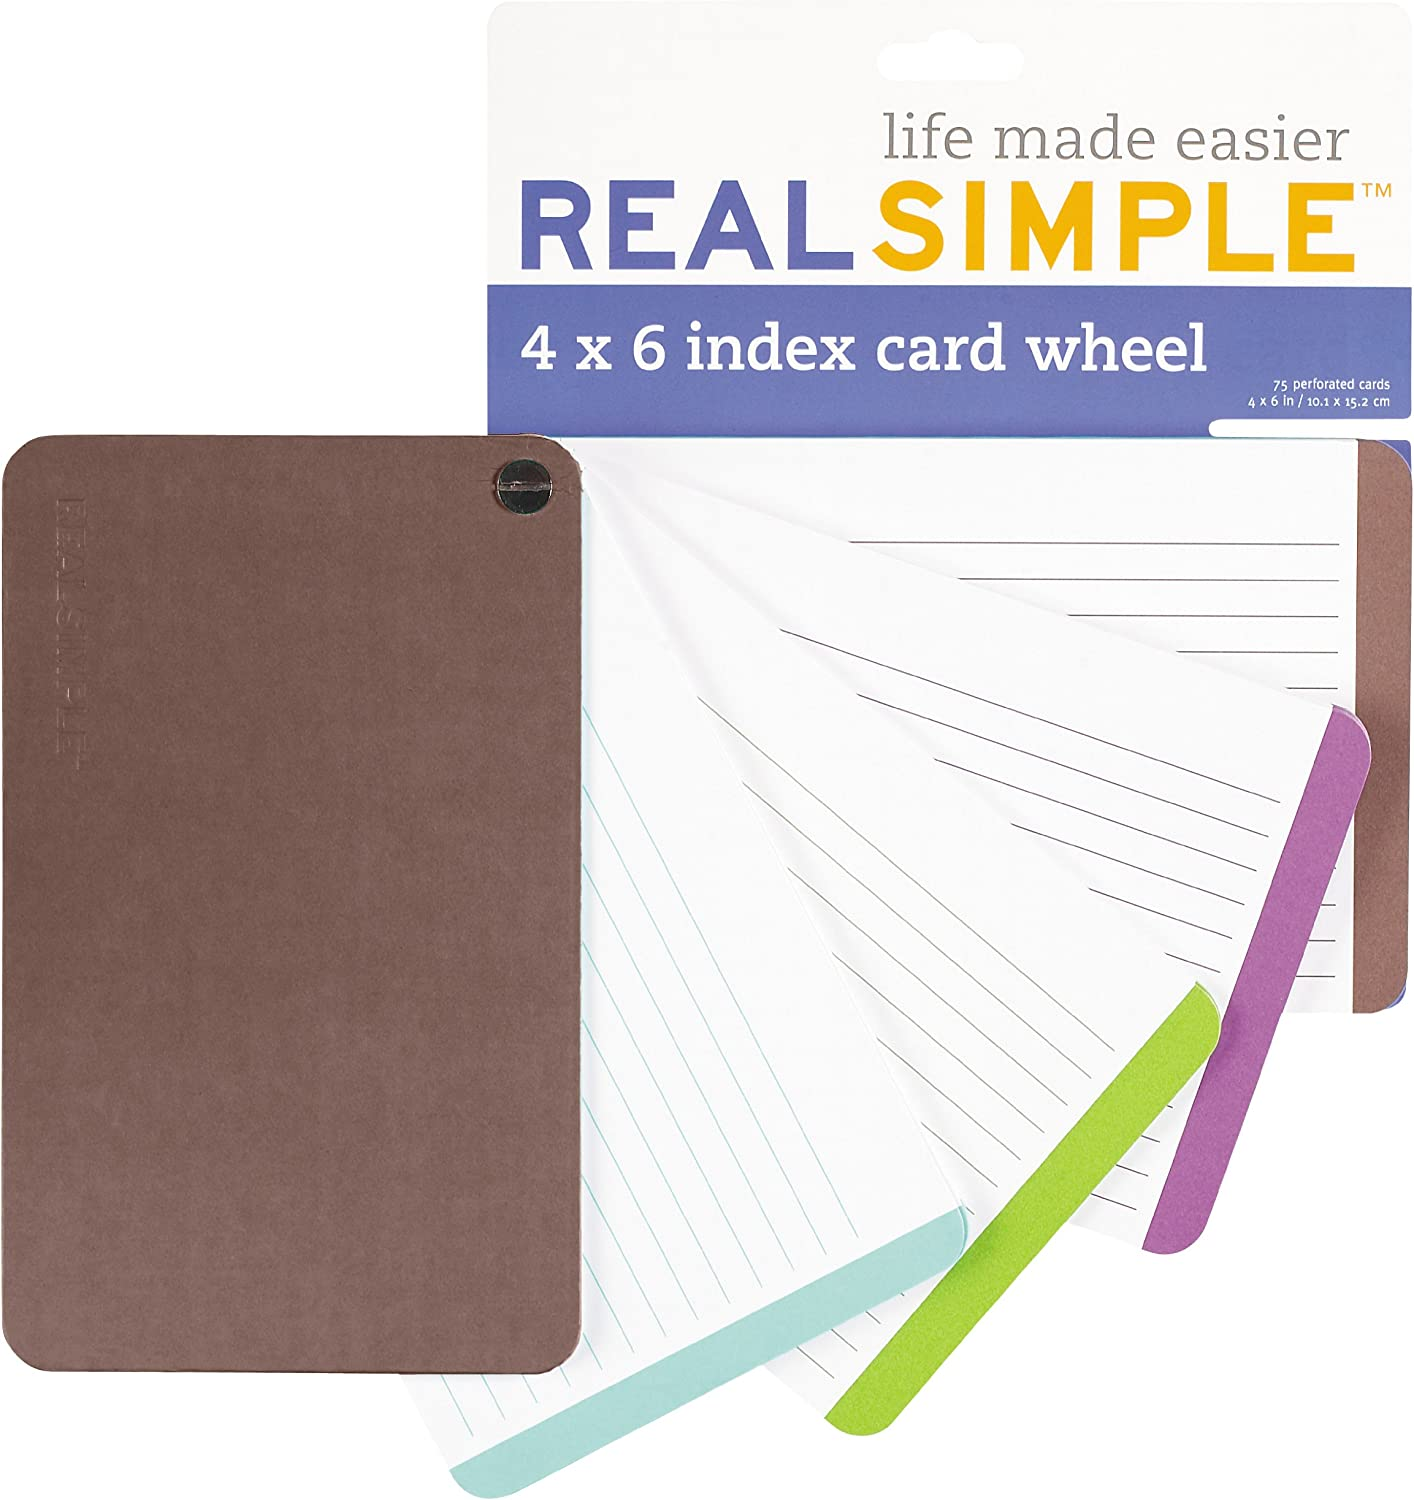 Real Simple Index Card 5x5, Purple (53055): Amazon.co.uk: Office